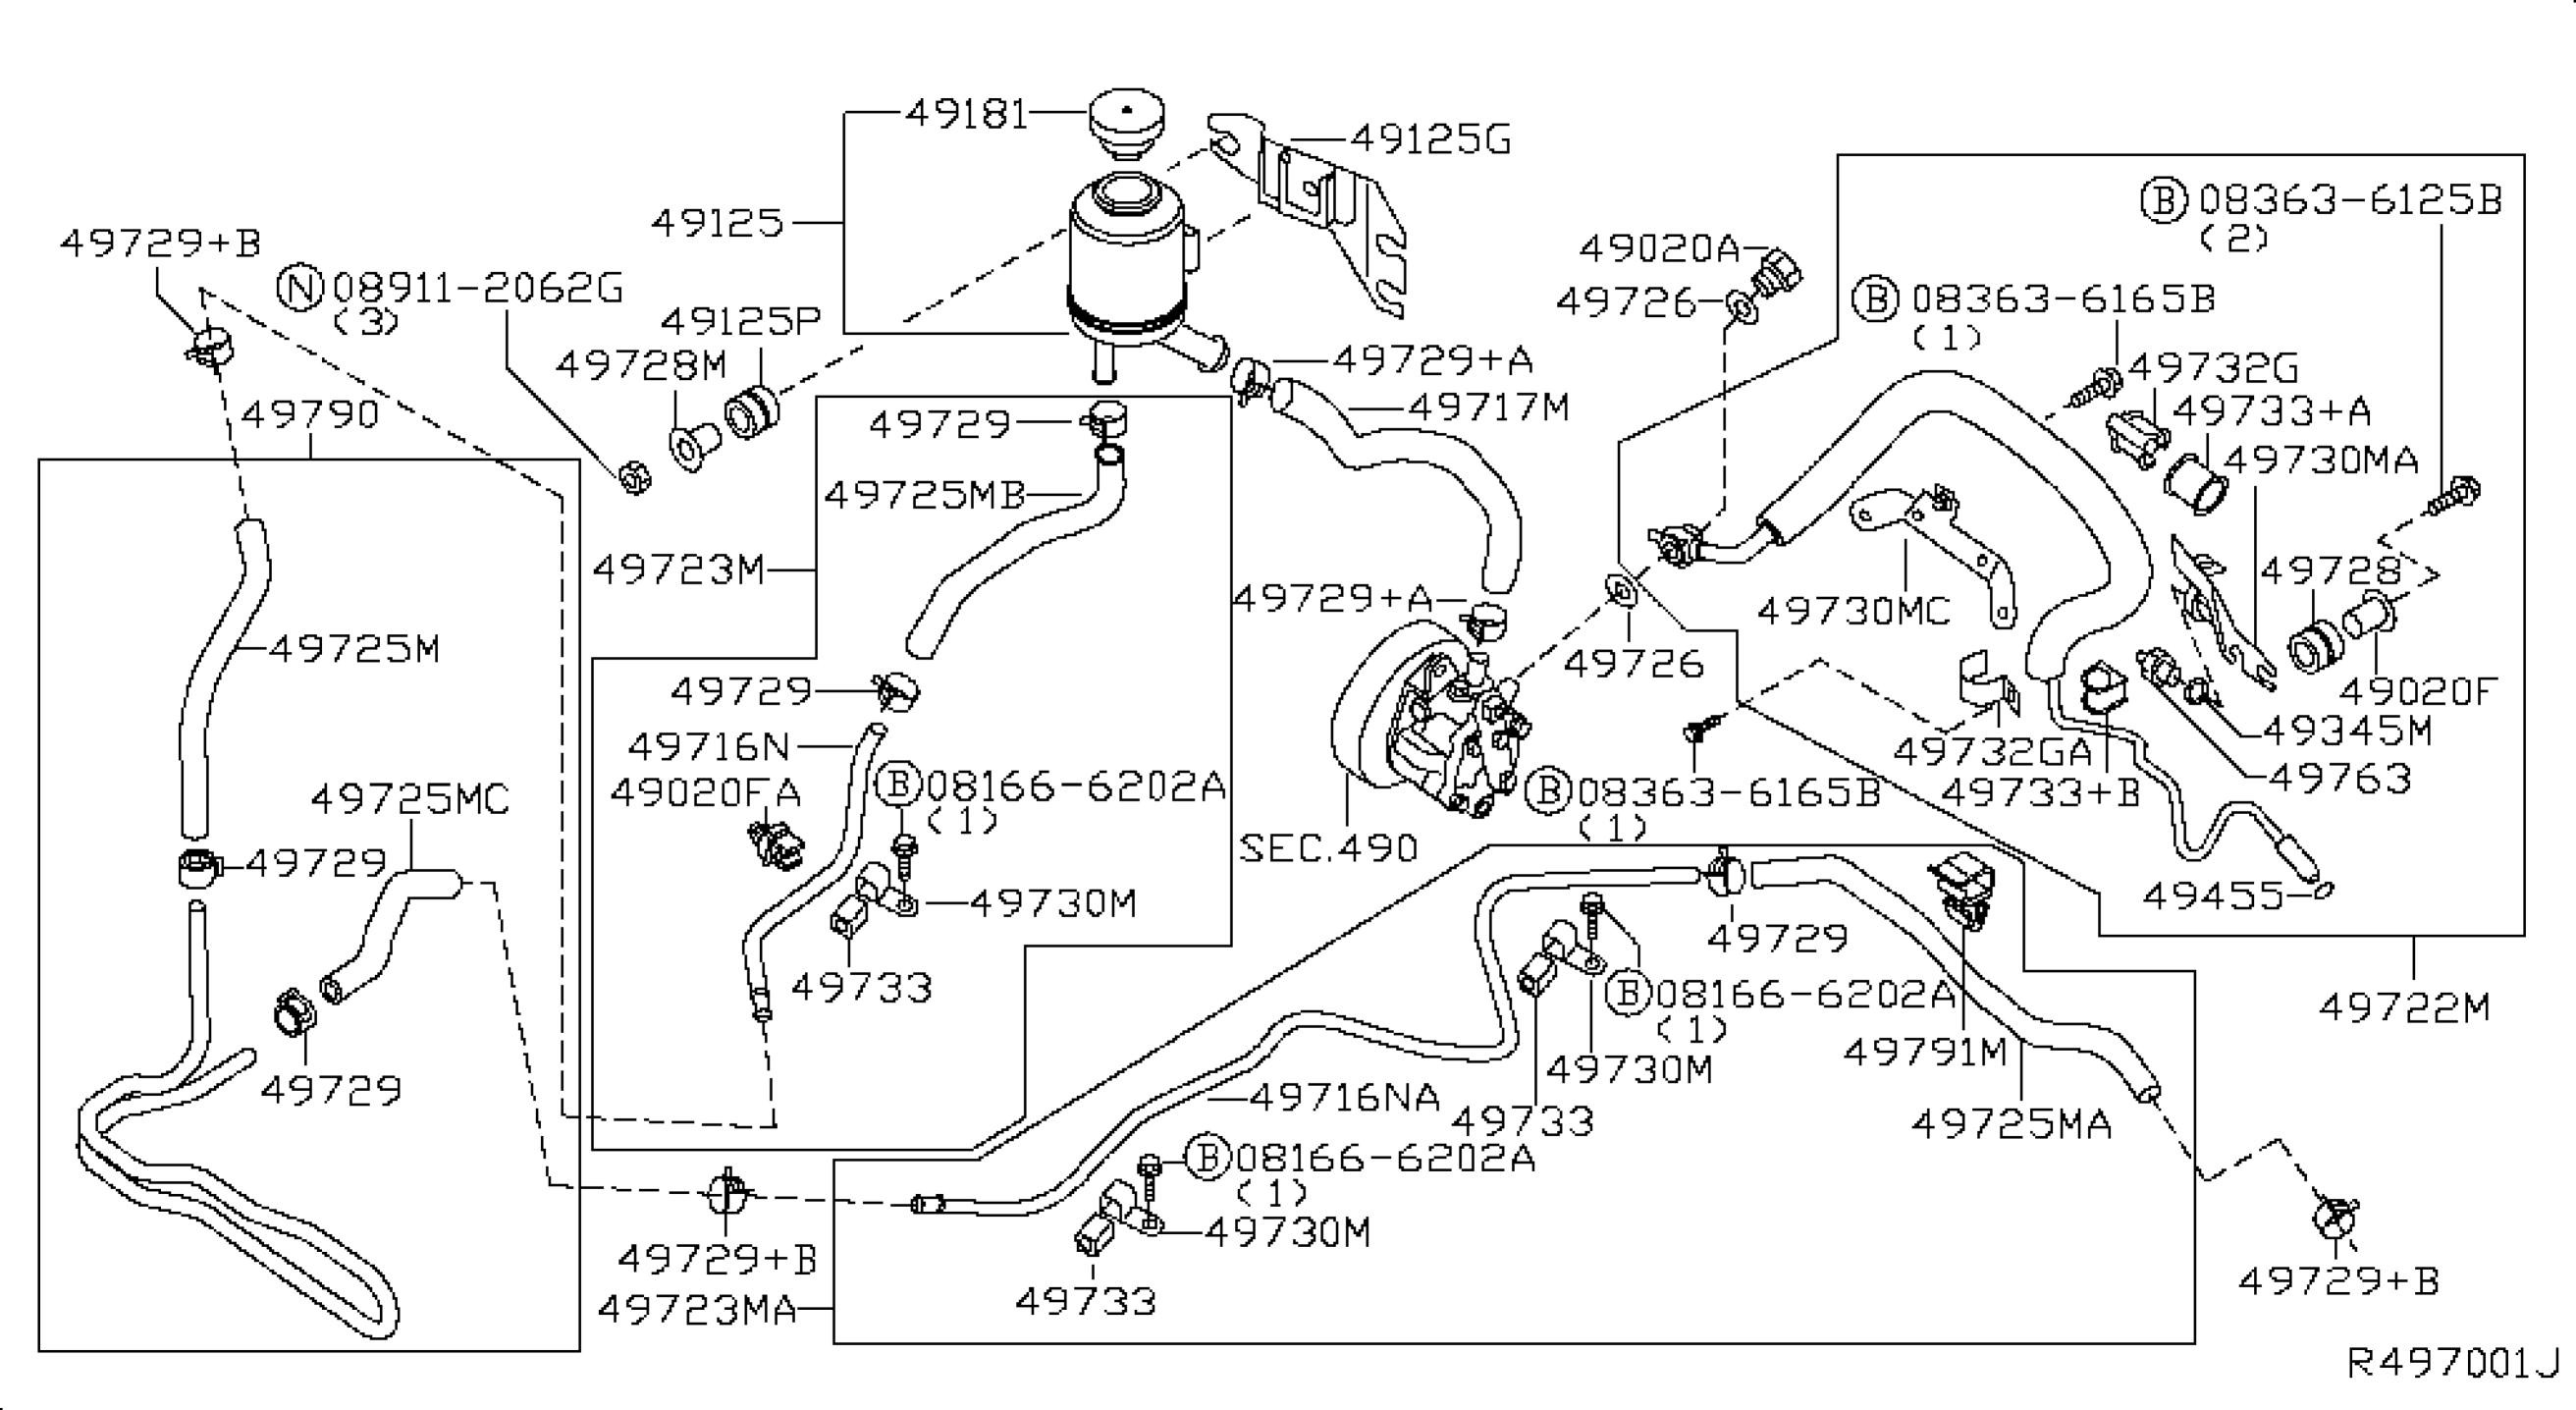 Power Steering Parts Diagram My Wiring DIagram